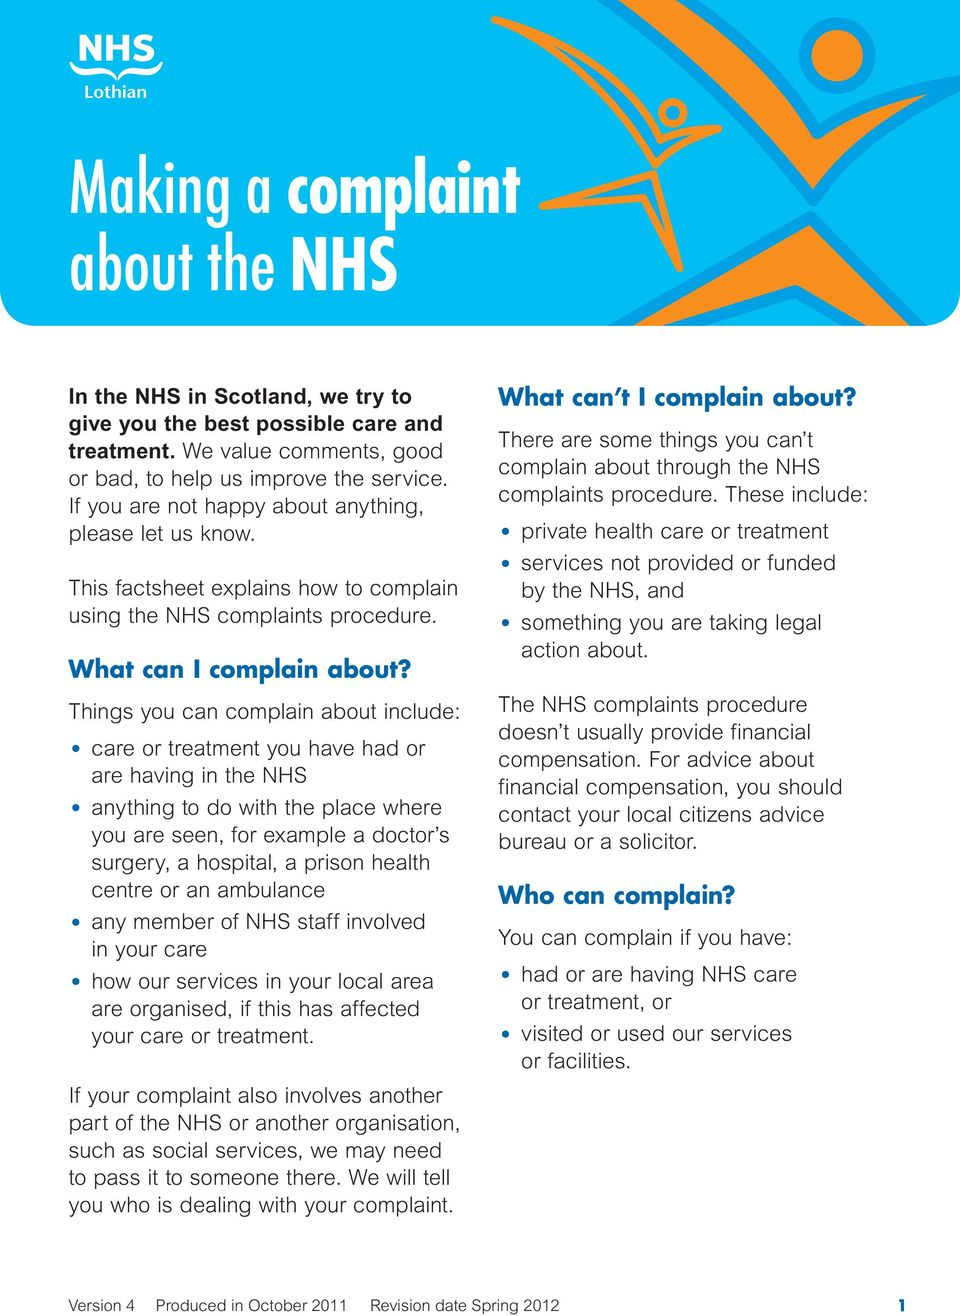 Things you can complain about include: care or treatment you have had or are having in the NHS anything to do with the place where you are seen, for example a doctor s surgery, a hospital, a prison